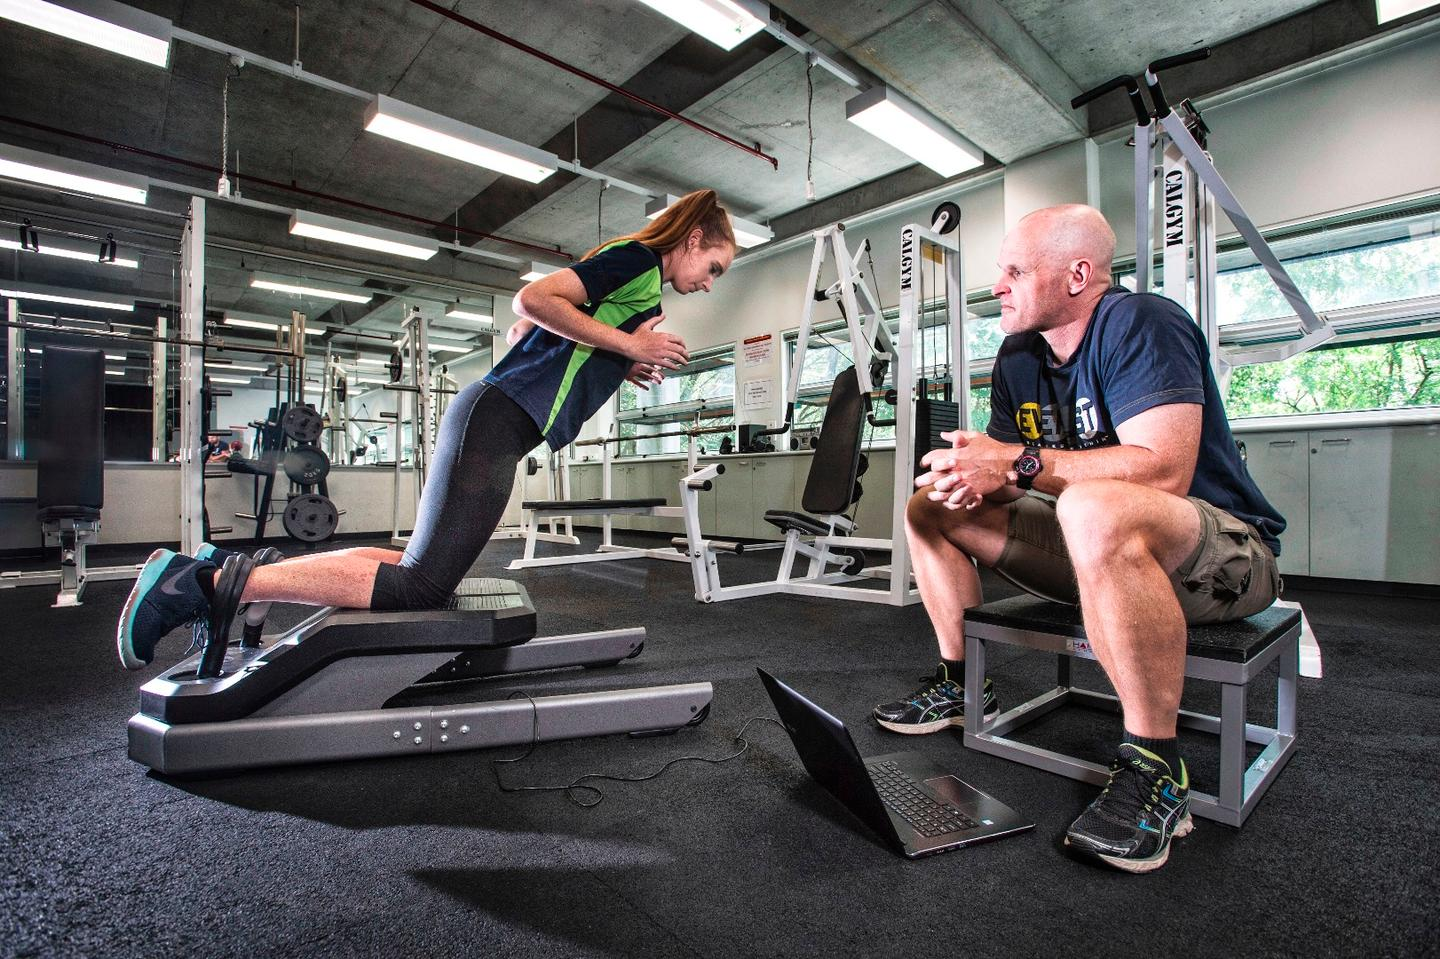 The Nordbord can be used by athletes in a variety of sports